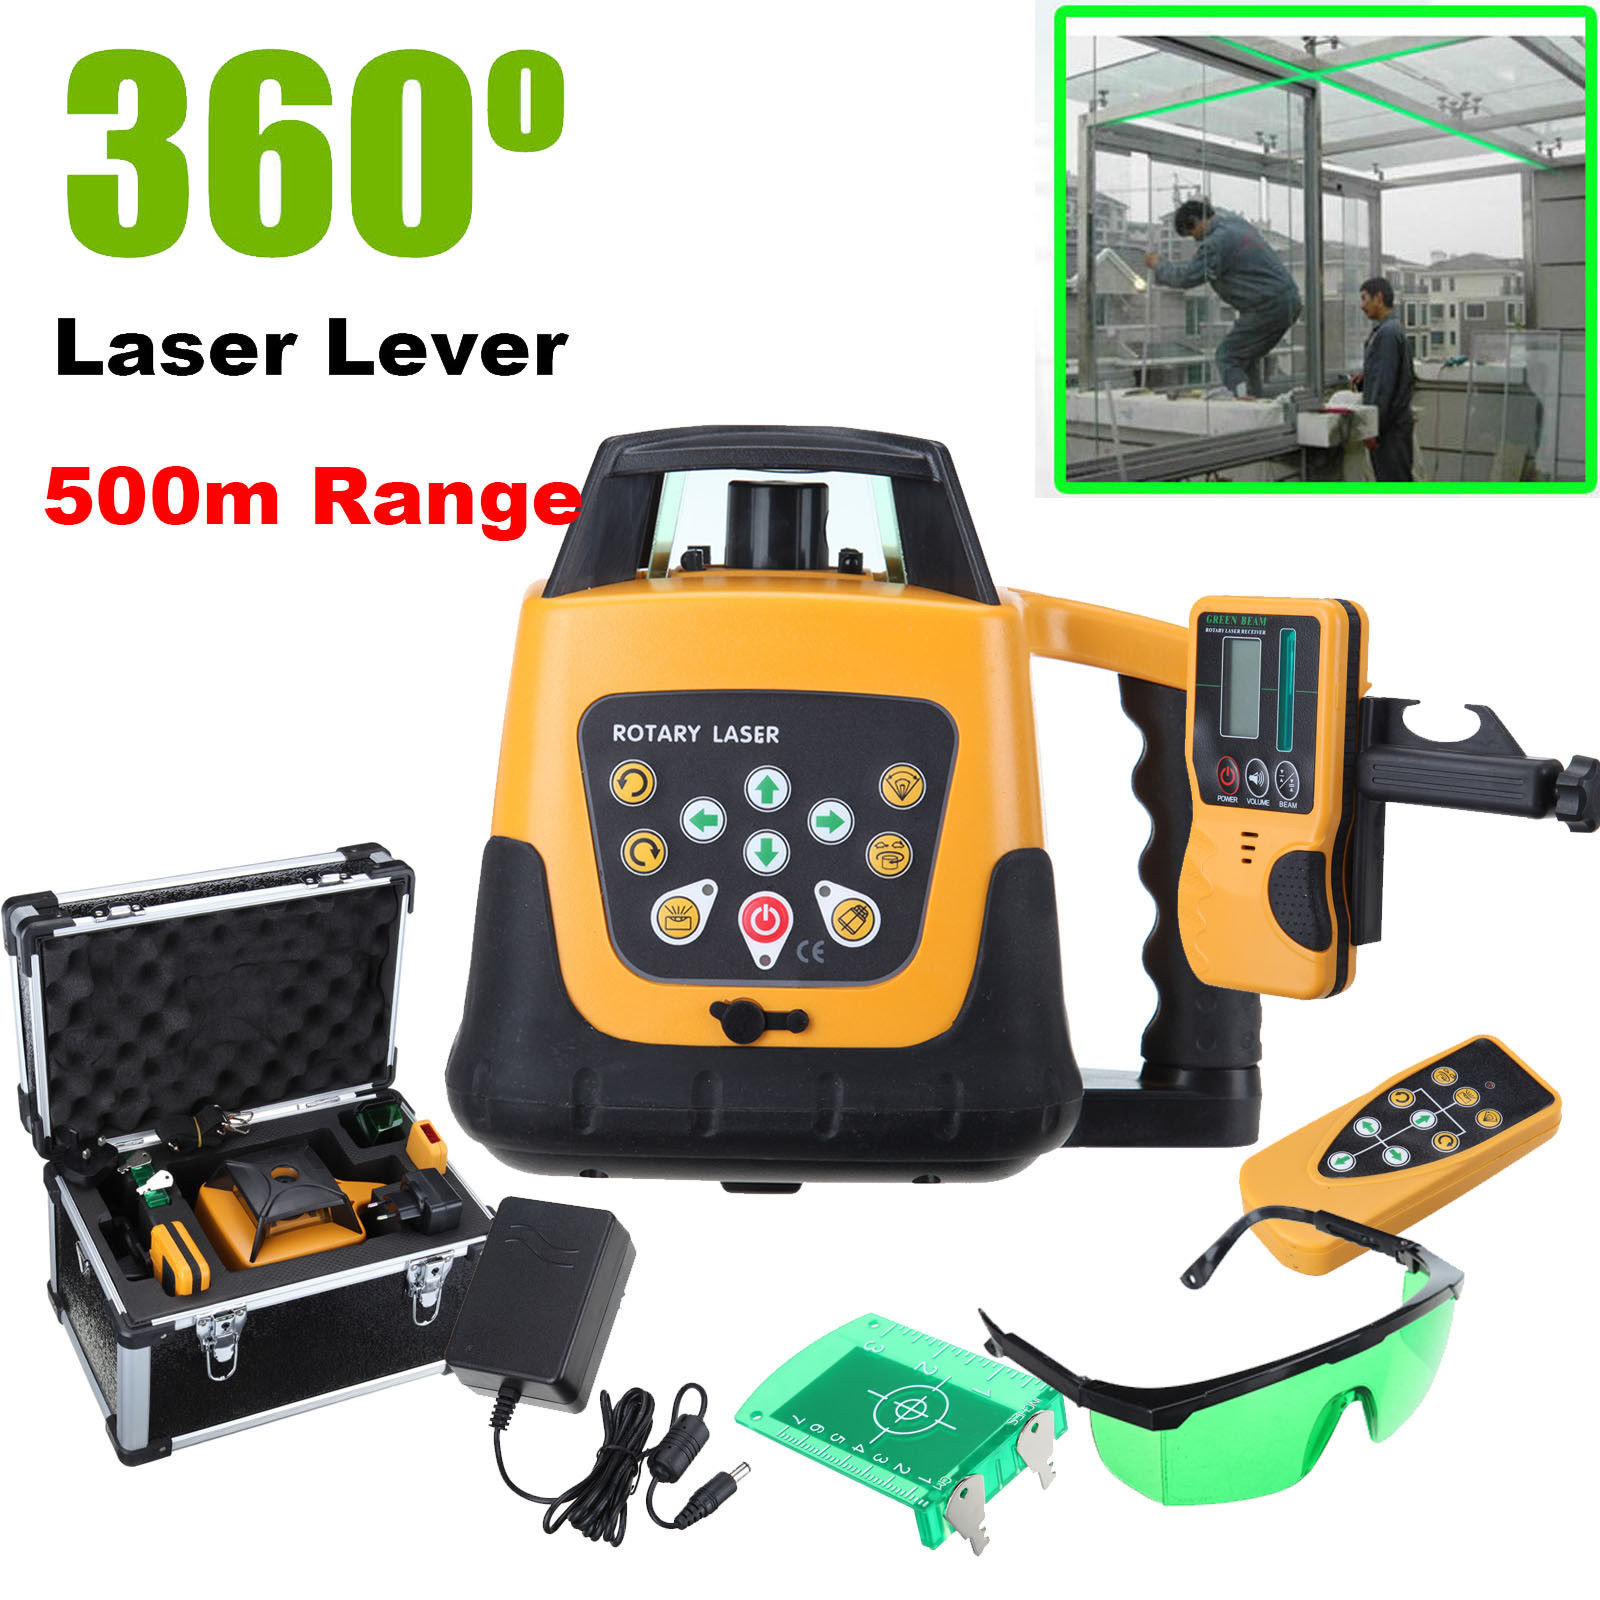 Self-leveling Rotary/ Rotating Green Laser Level Kit With Case 500M RangeSelf-leveling Rotary/ Rotating Green Laser Level Kit With Case 500M Range